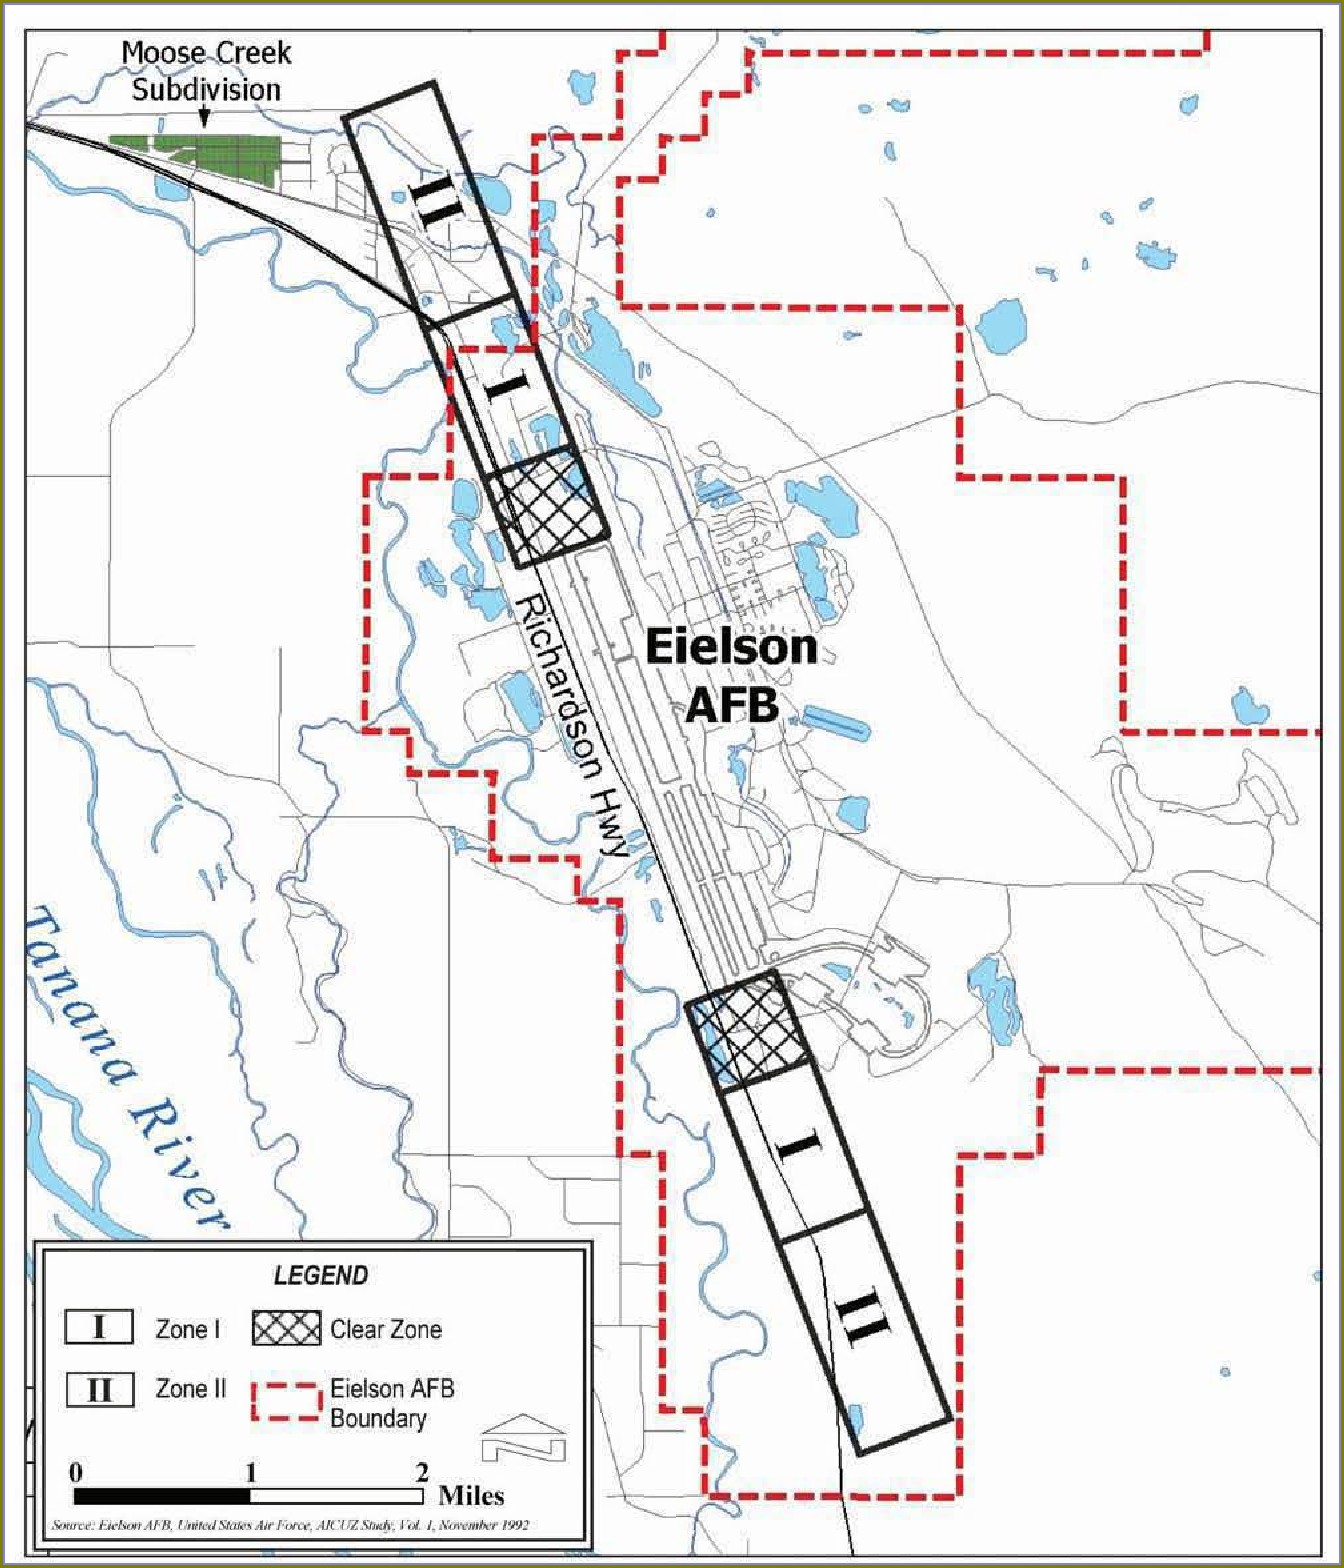 Eielson Afb Building Map